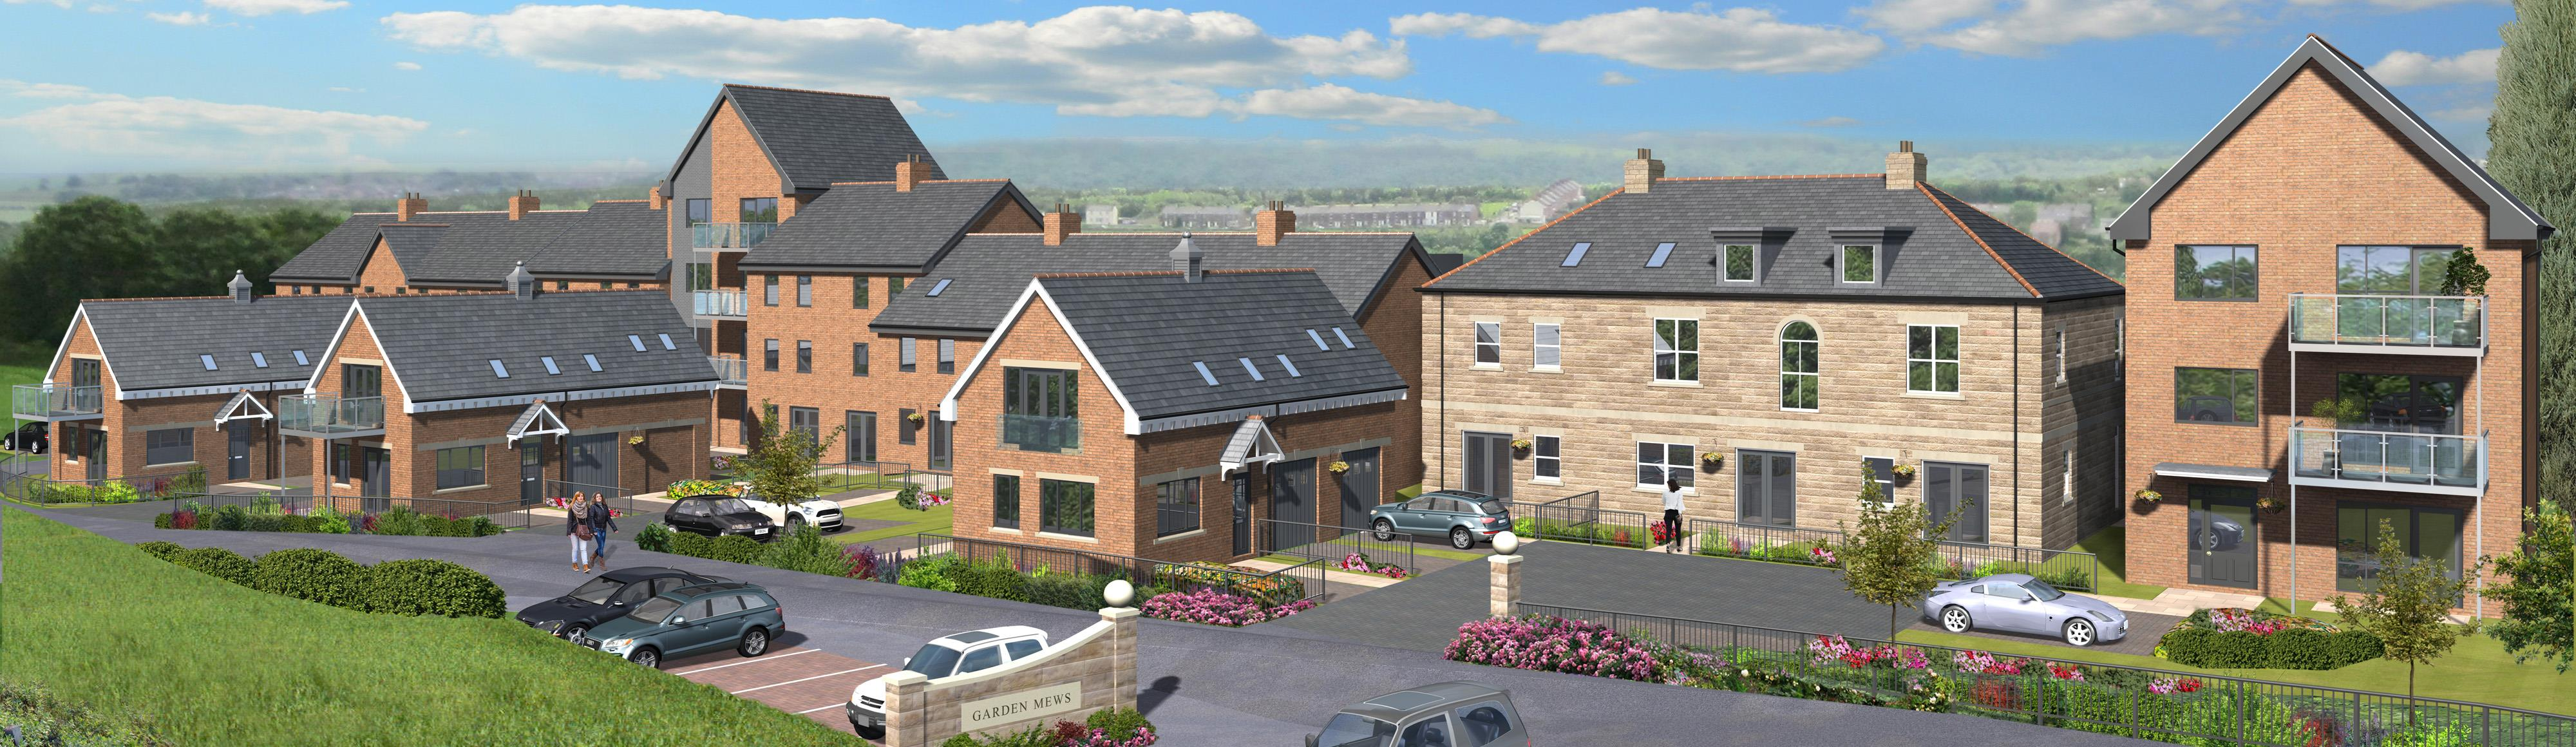 LOCAL DEVELOPER SET TO BRING EXCITING BLAYDON PROPERTY DEVELOPMENT TO MARKET